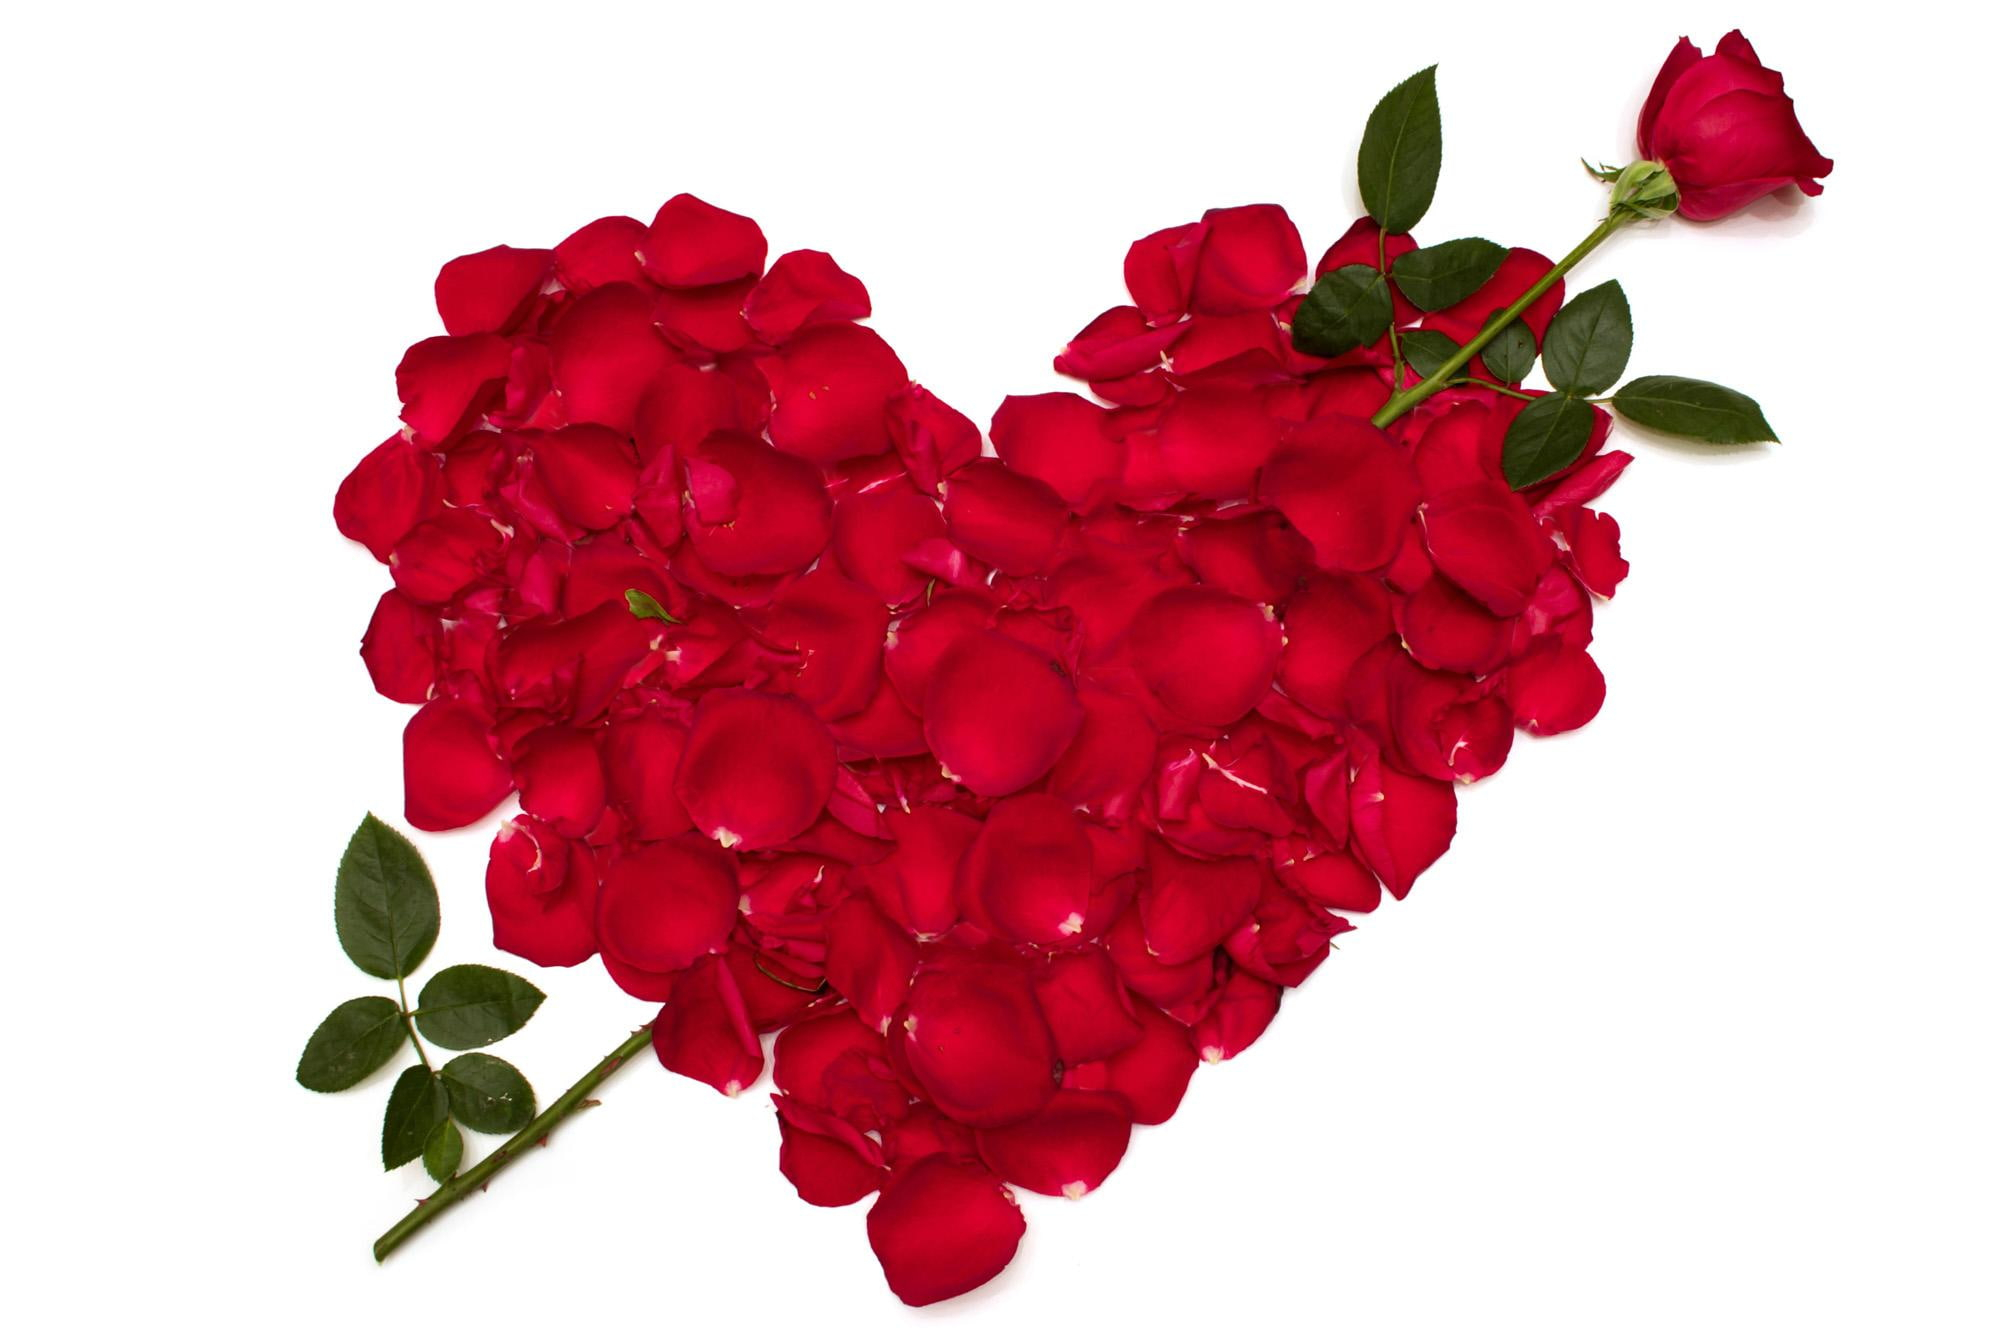 Roses Heart Red Petals Flowers love valentines day valentine 2000x1333